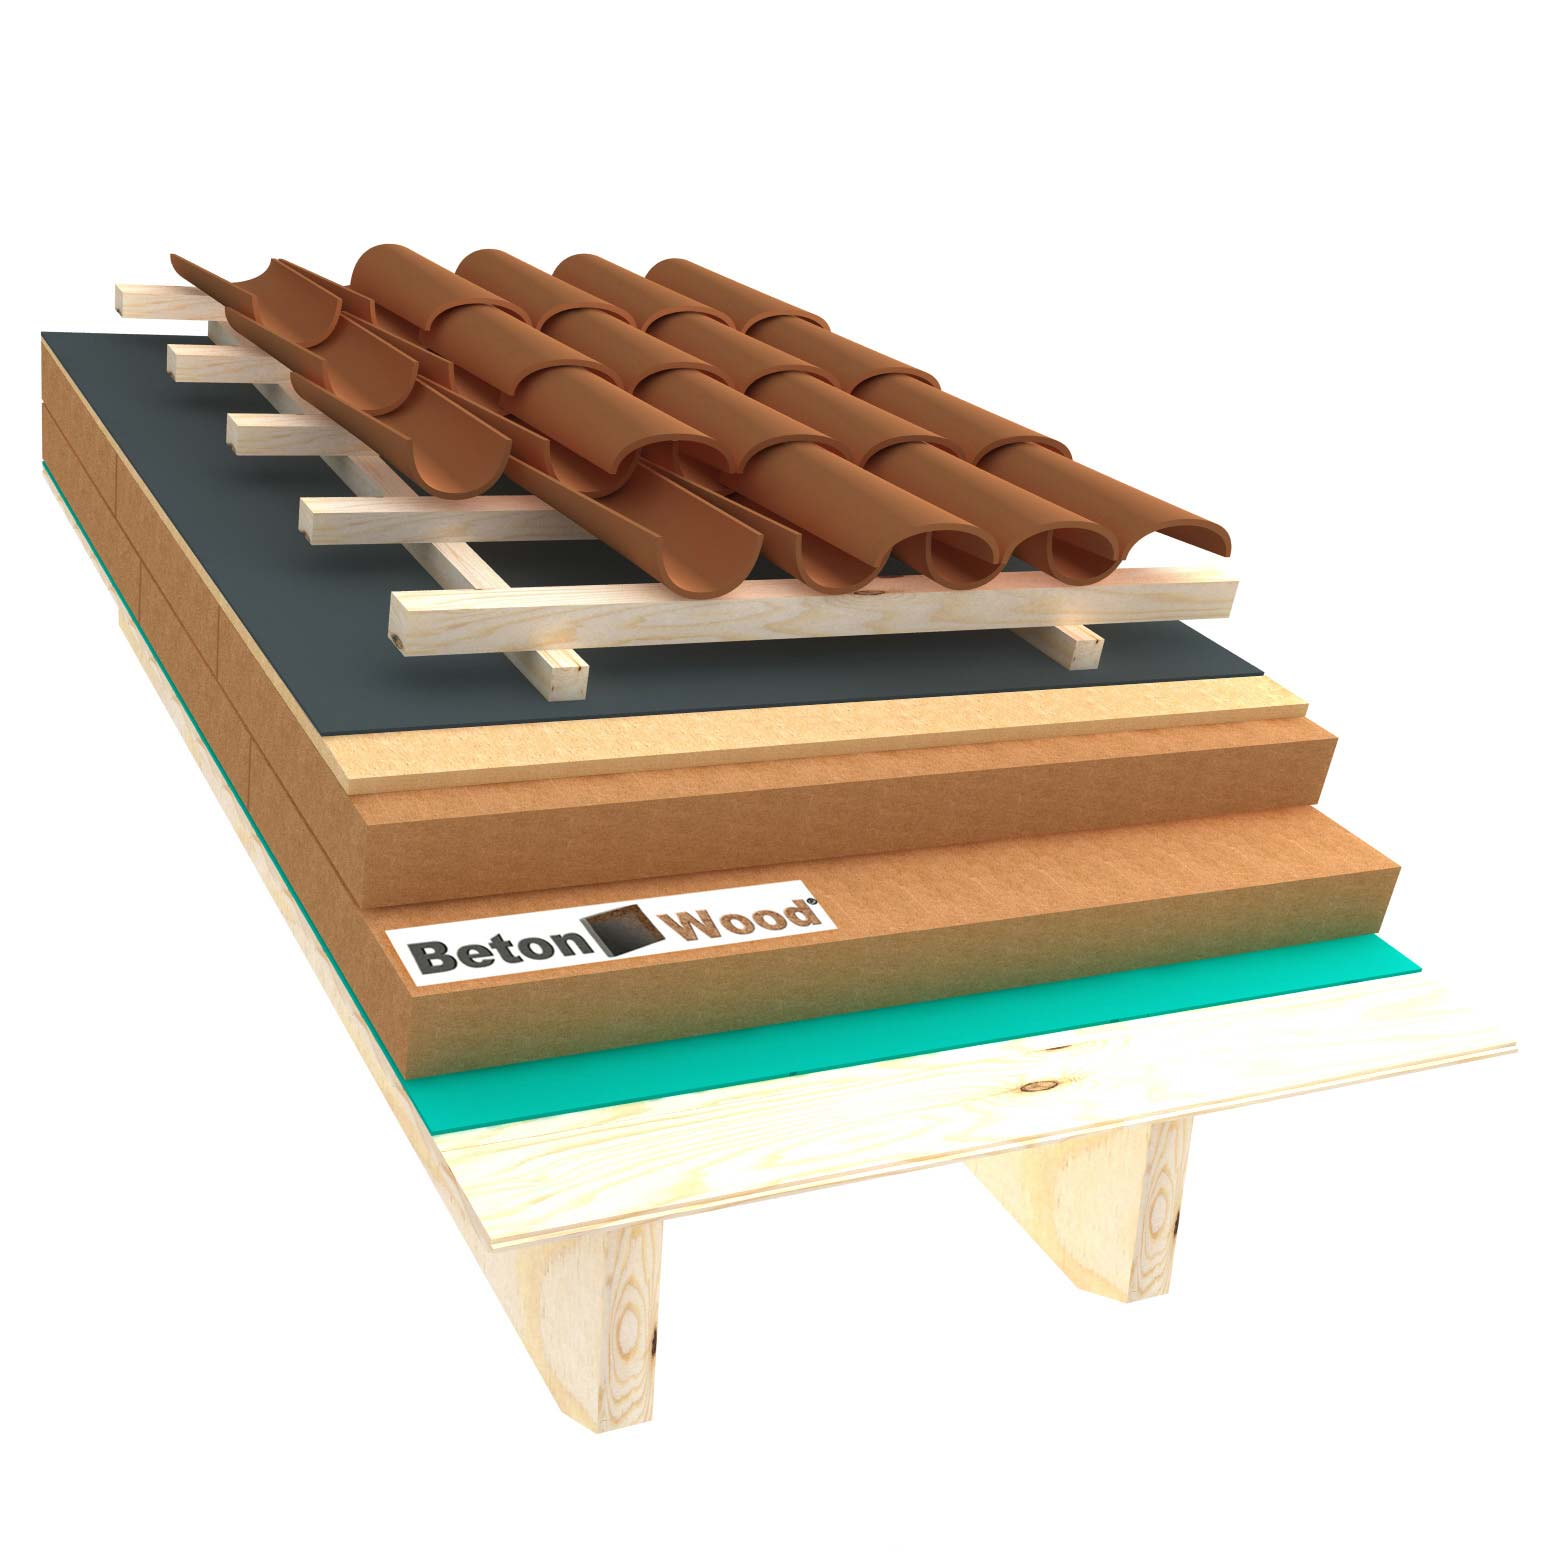 Ventilated roof with fiber wood Isorel and Special on matchboarding